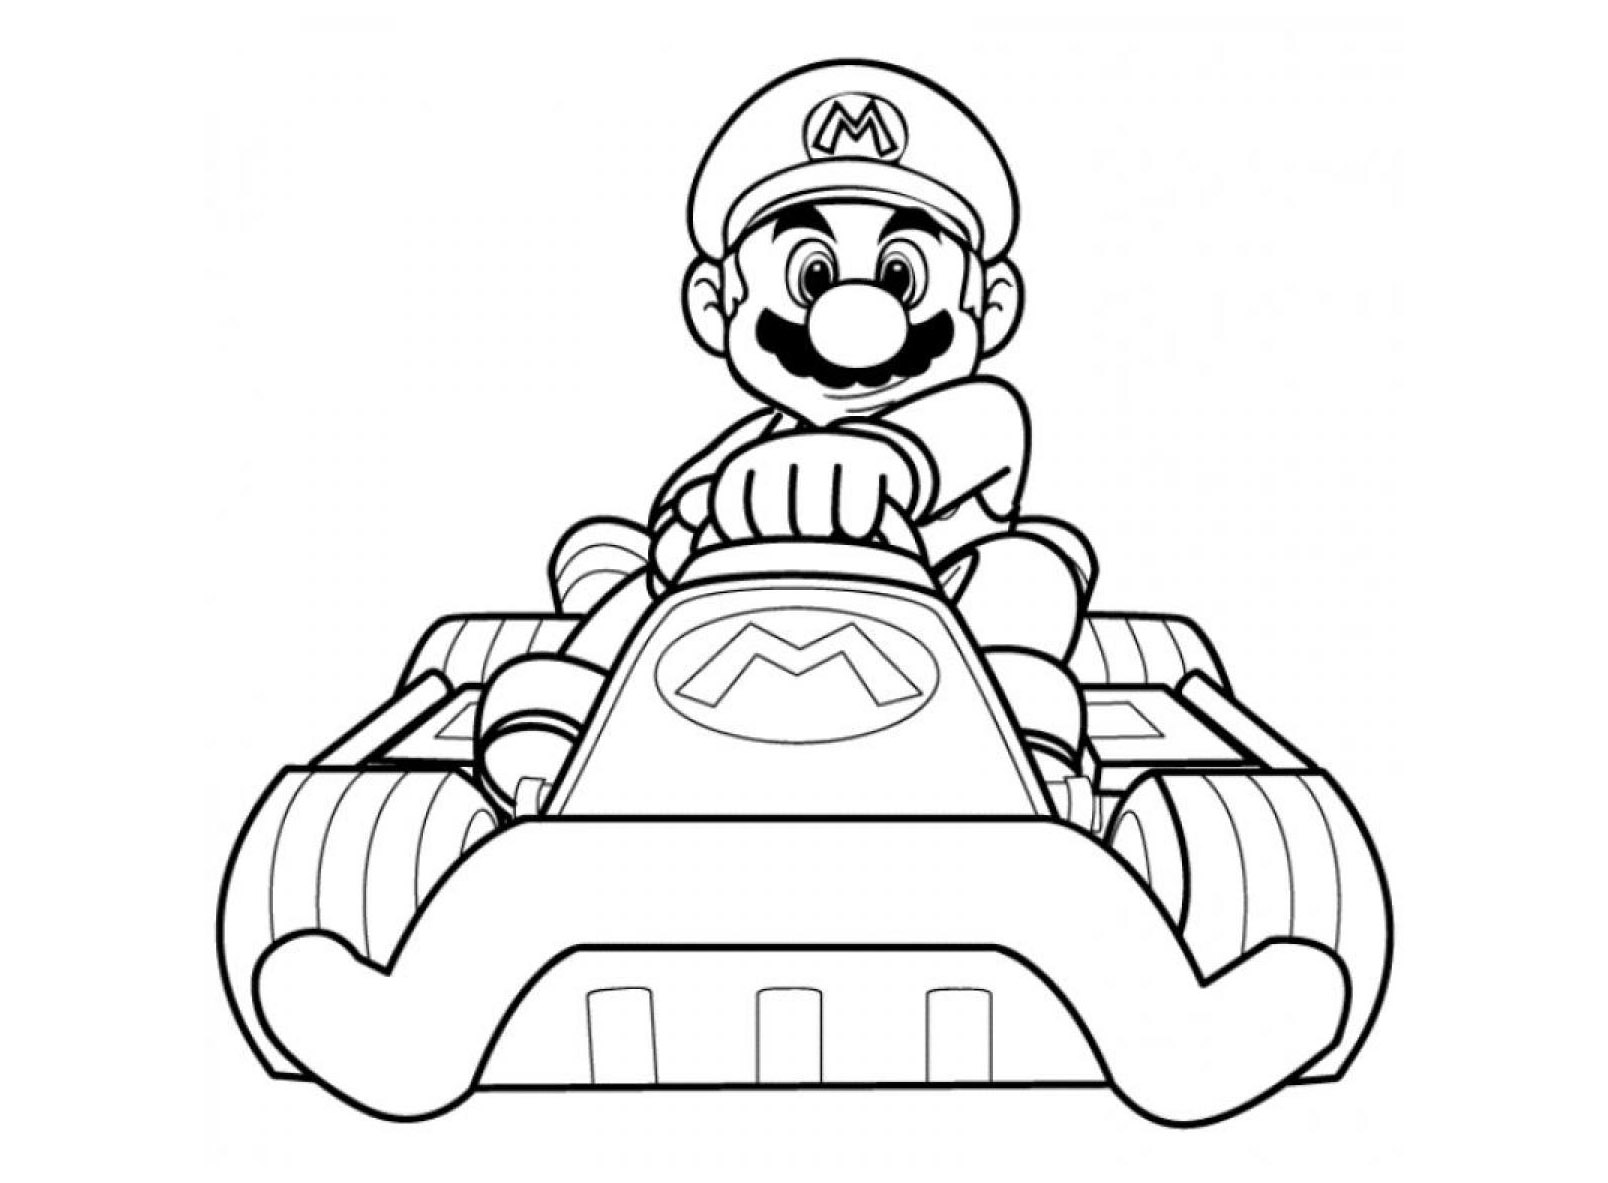 mario kart wii 1 coloriage mario kart coloriages pour enfants. Black Bedroom Furniture Sets. Home Design Ideas